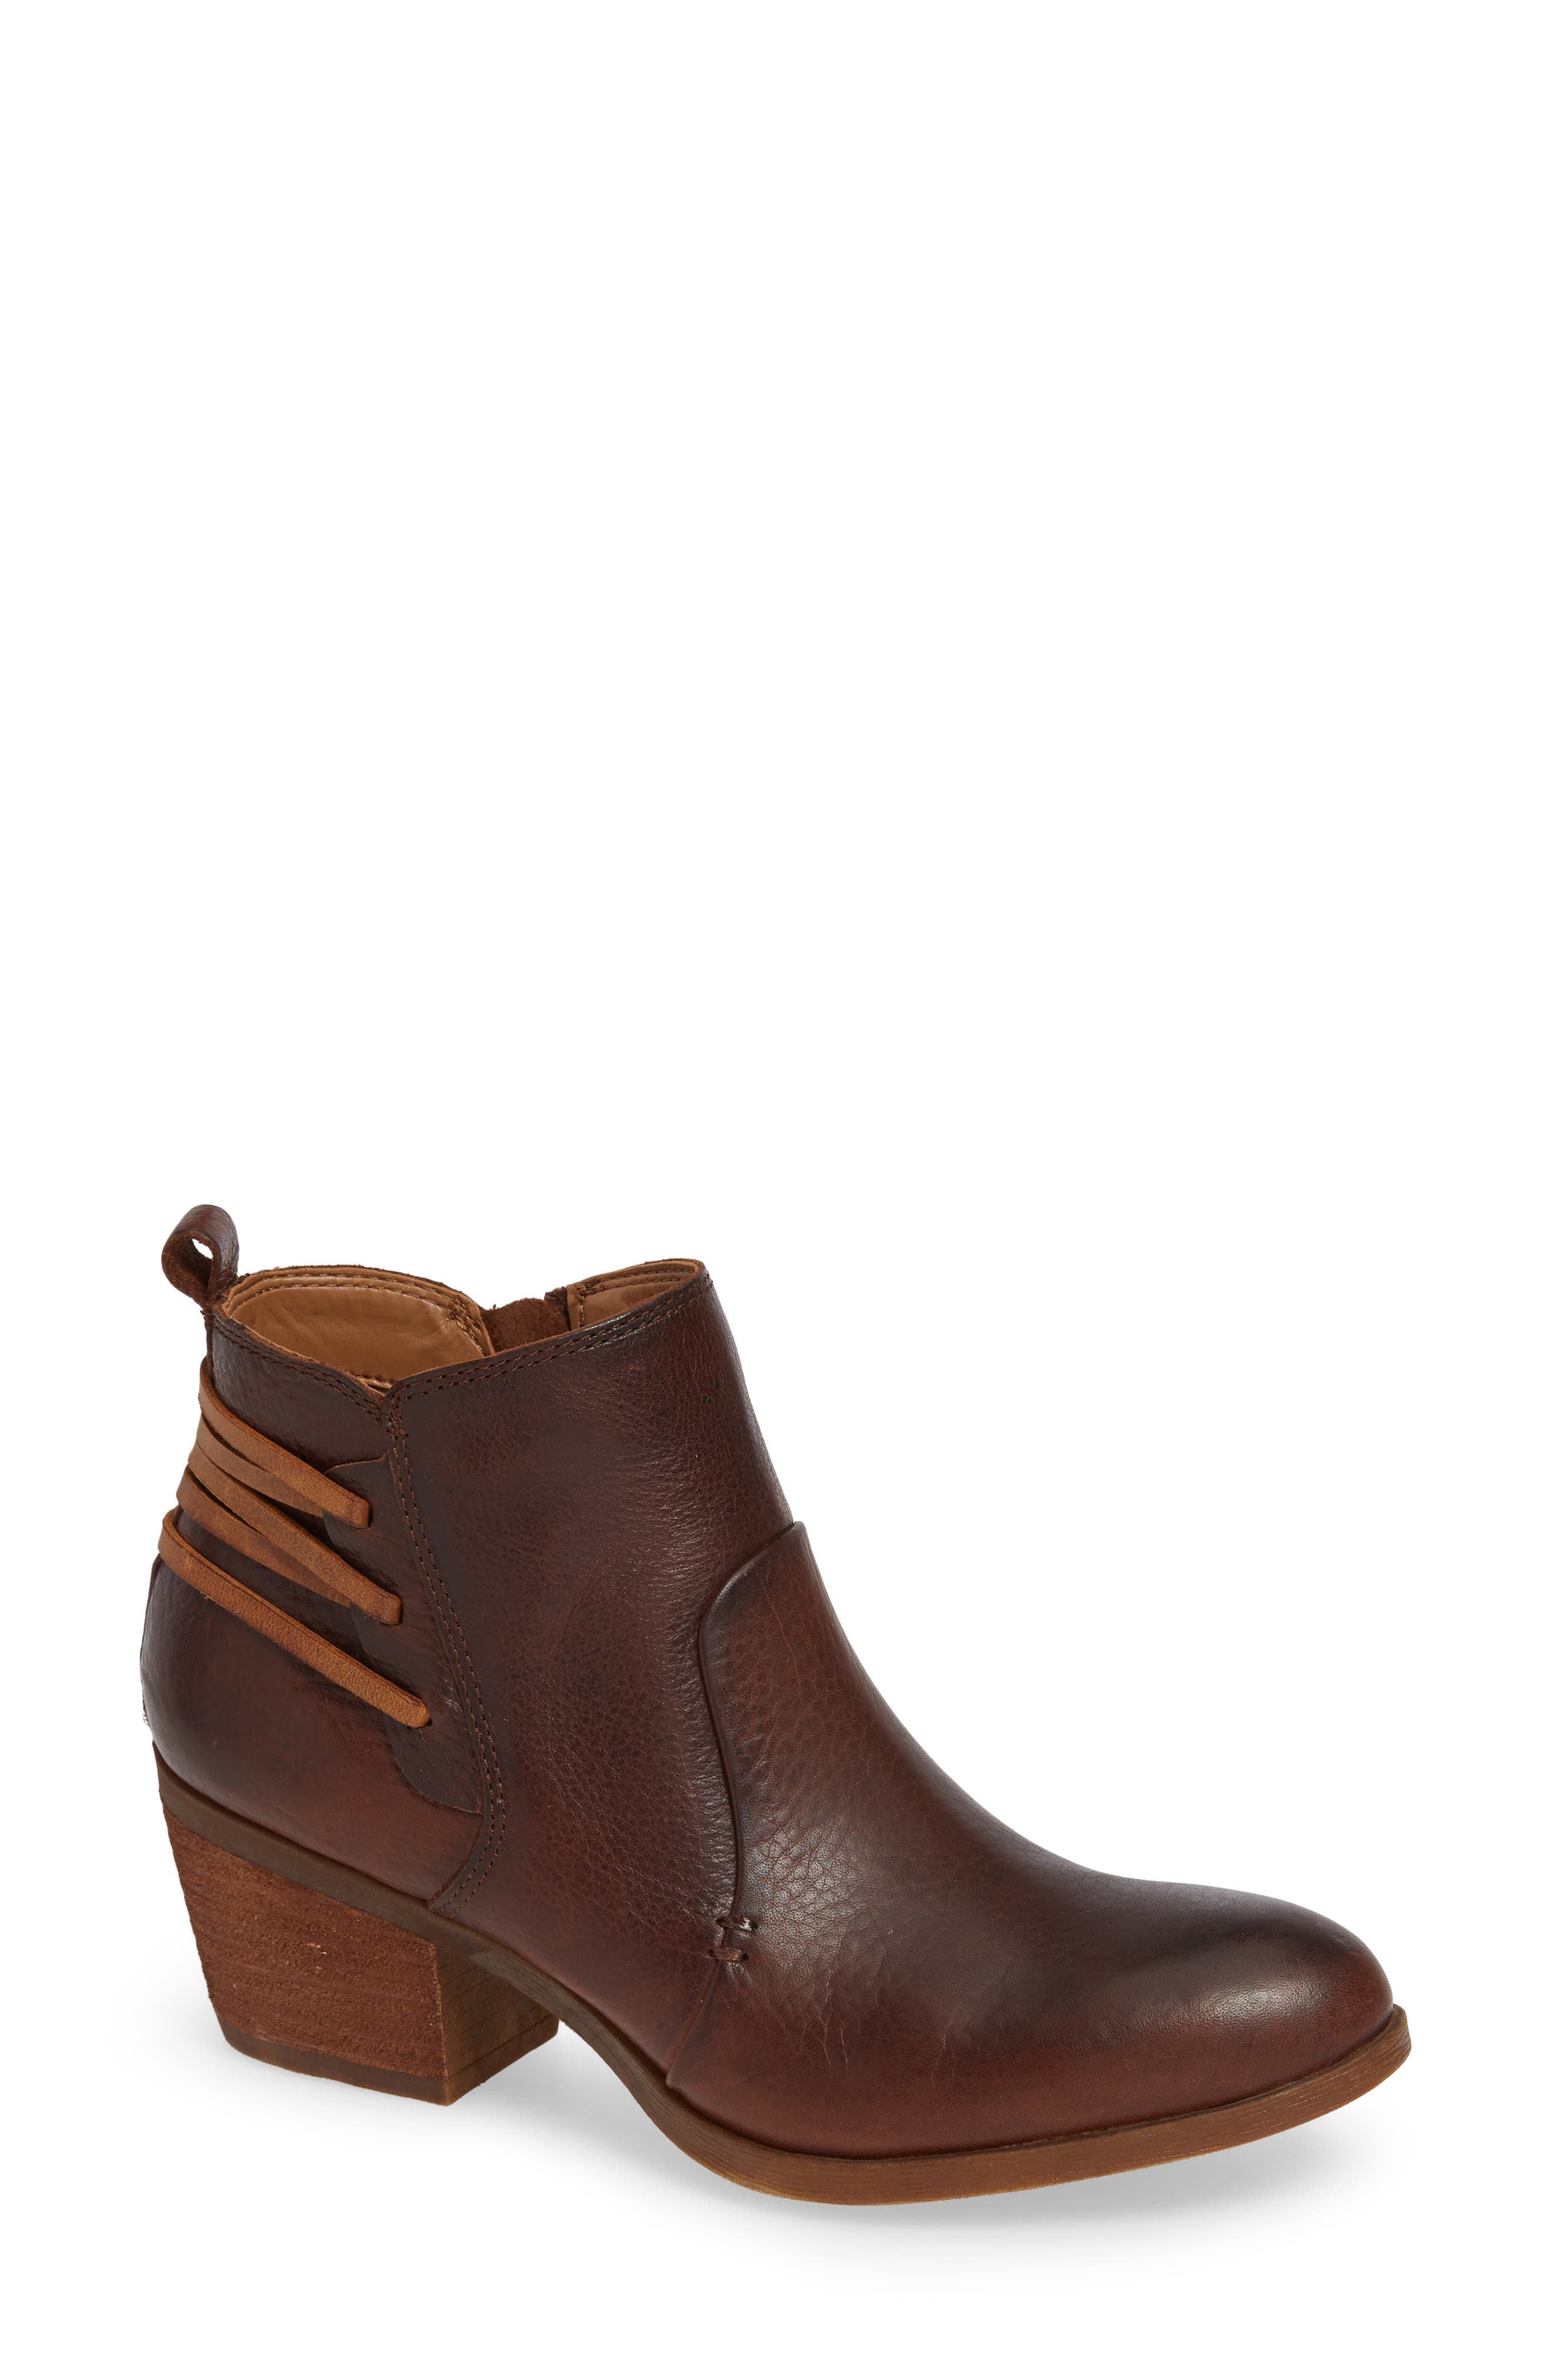 Kinsley Bootie,                             Main thumbnail 1, color,                             WHISKEY/ ALMOND